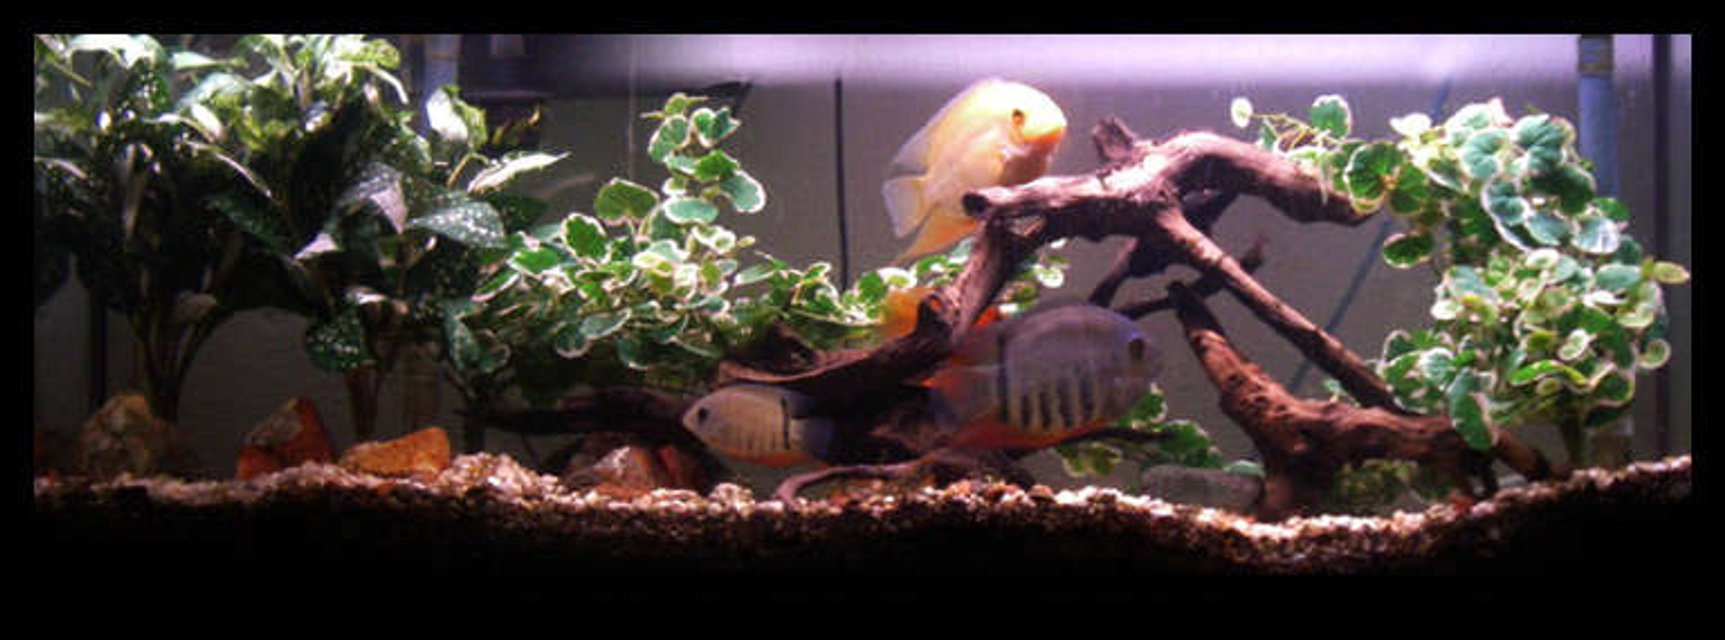 Rated #62: 55 Gallons Freshwater Fish Tank - 55 gallon setup, silk plants, driftwood and chiclids.